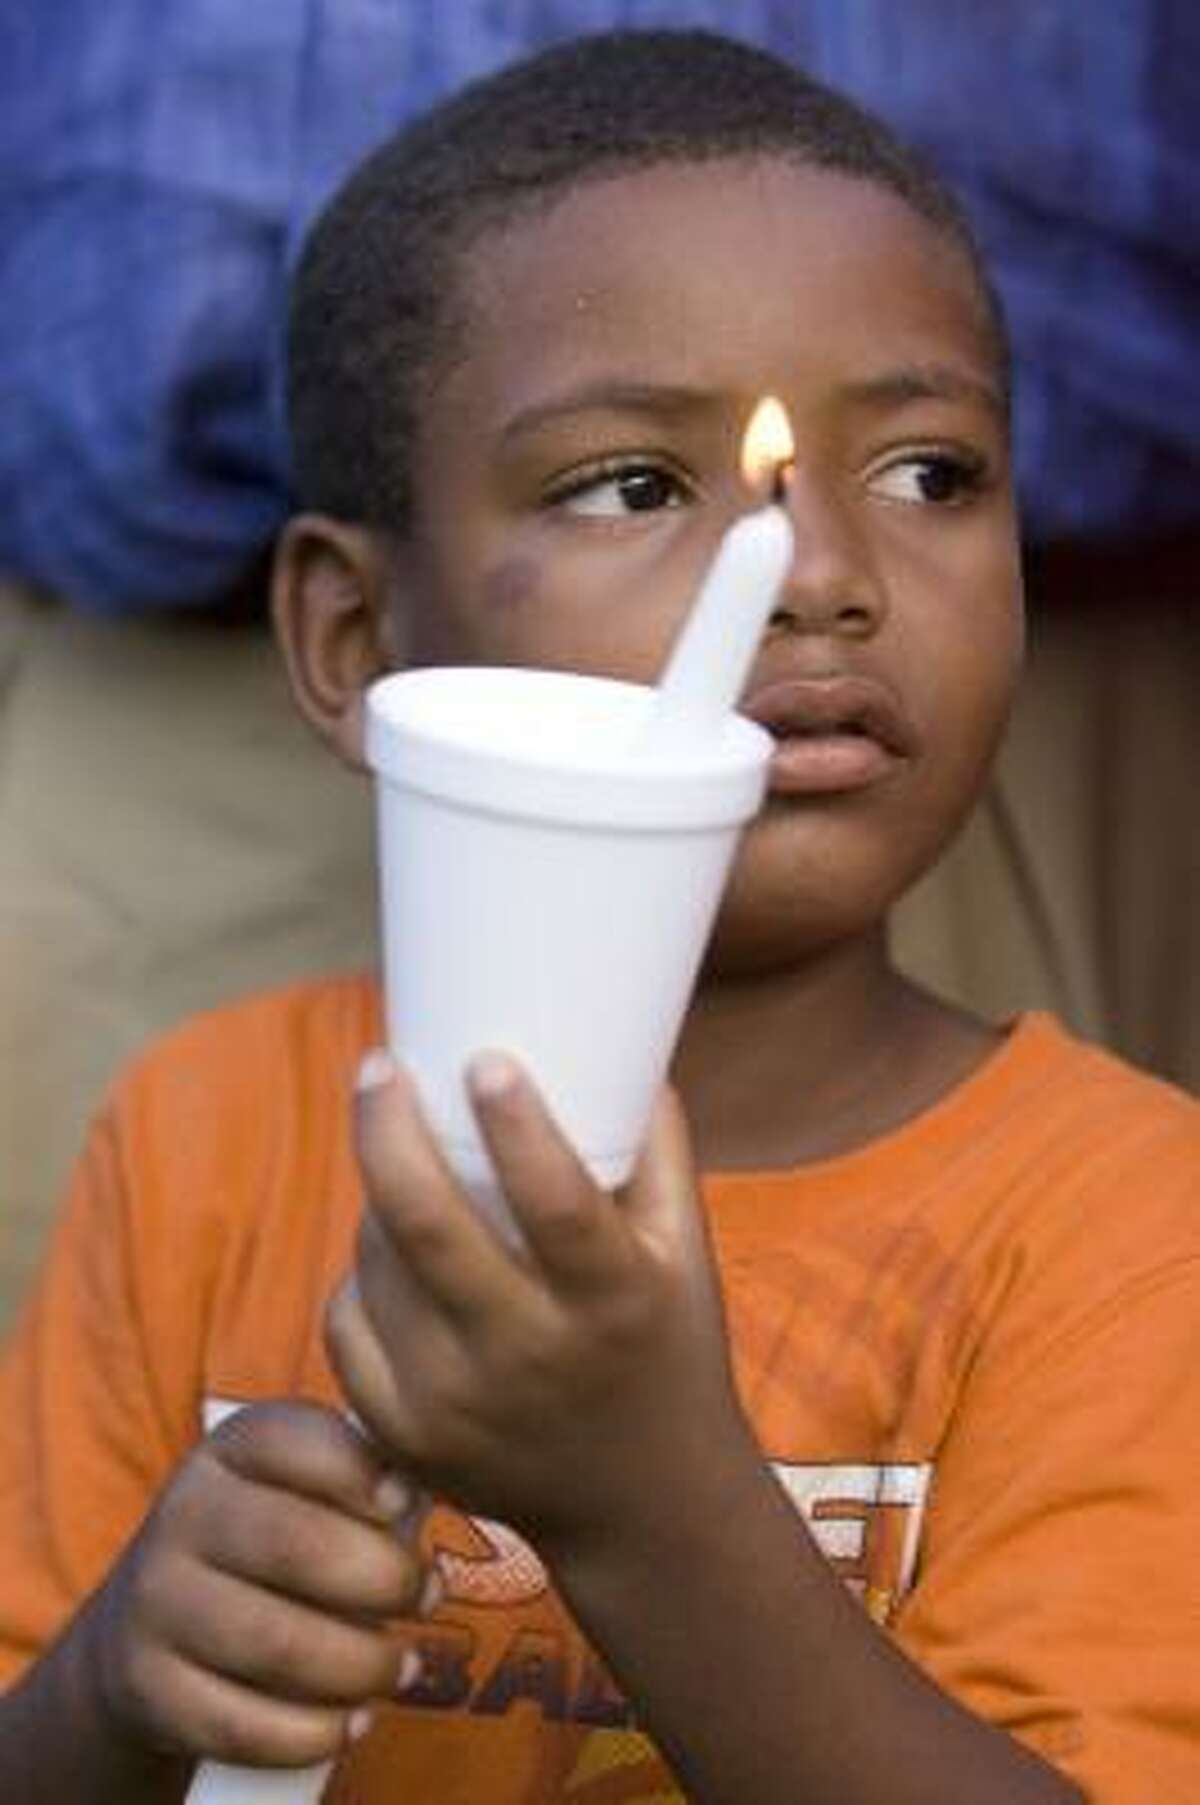 Five year-old Christiansen Abney during a prayer vigil to honor the memory of 6-year-old Tekerrious Jackson. Well wishers visited the site of the small apartment complex in Houston where Tekerrious Jackson was allegedly beaten to death by his father.